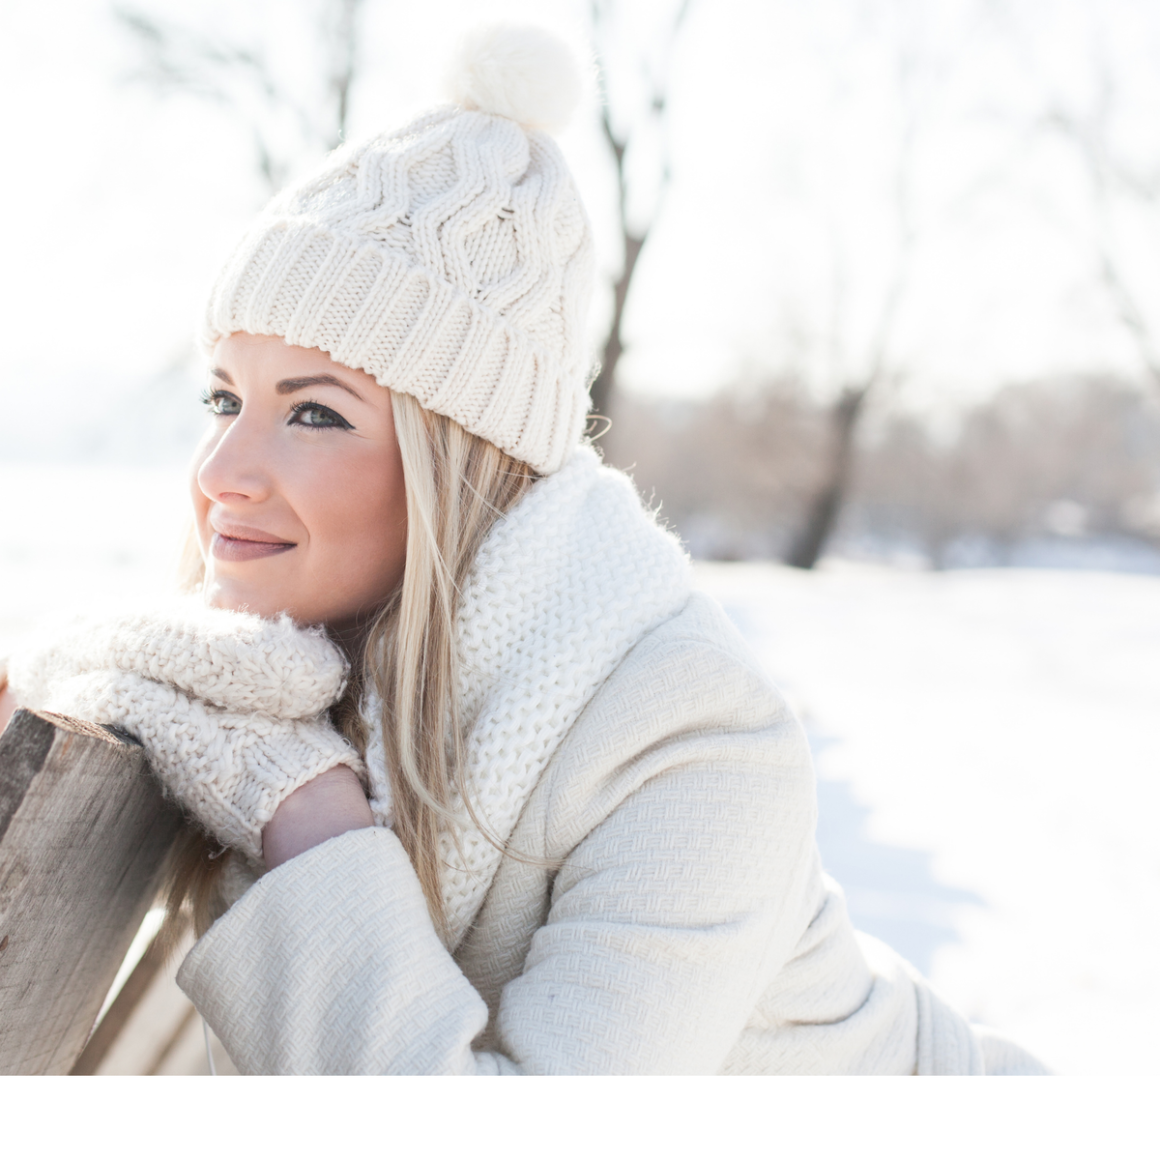 Switching Up Your Skin Care Routine For Winter